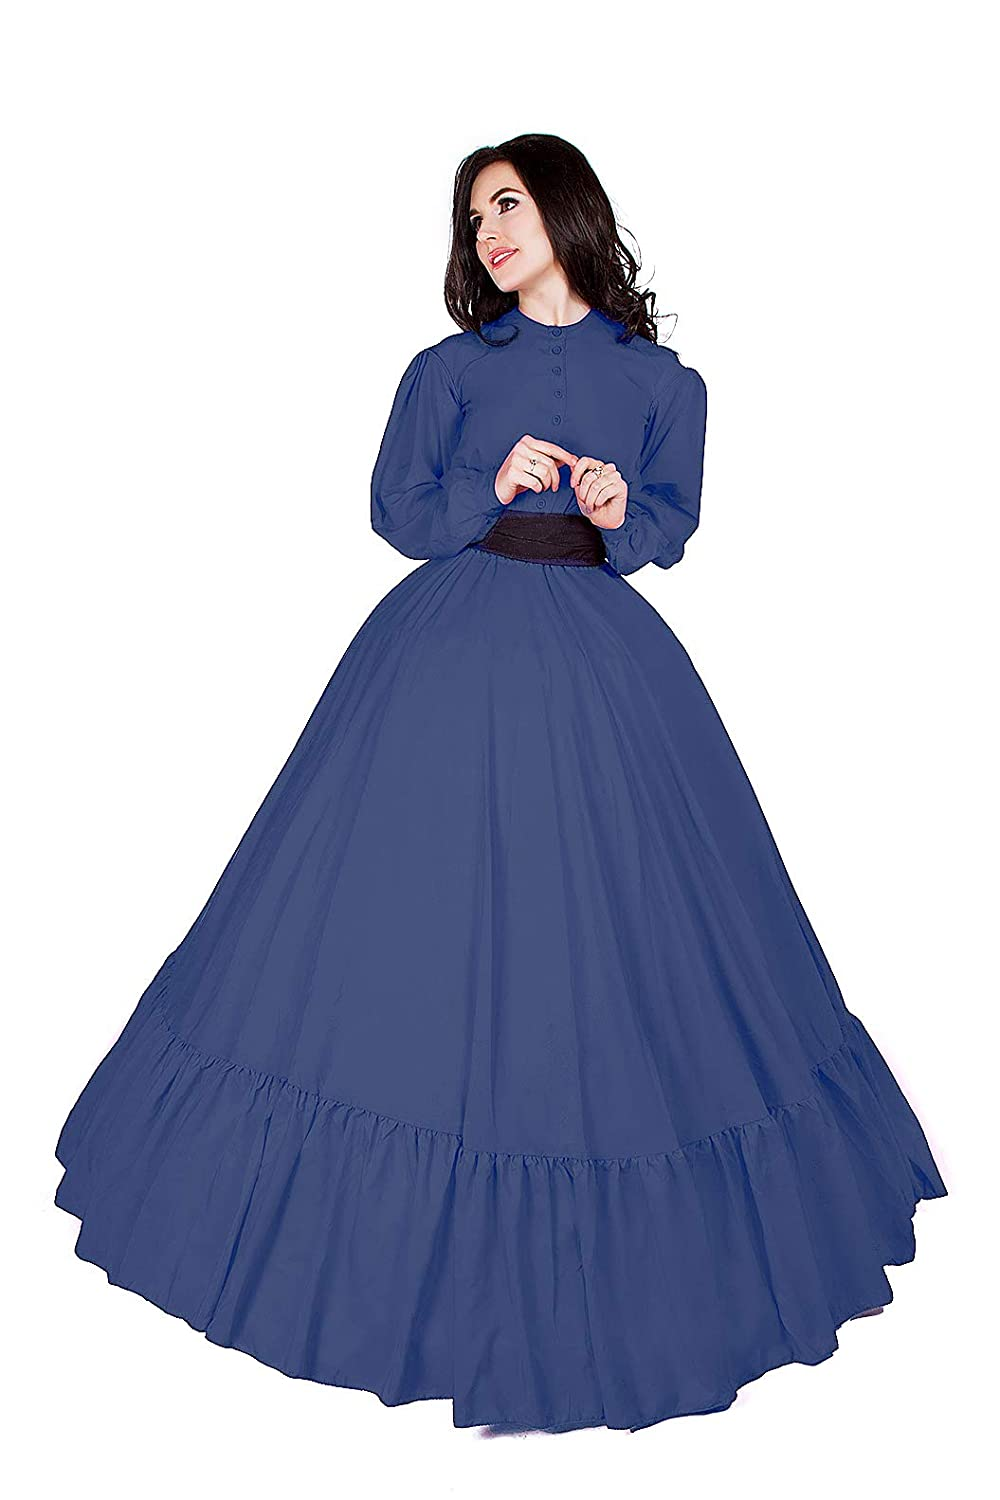 Victorian Dresses | Victorian Ballgowns | Victorian Clothing Civil War Reenactment Victorian Garibaldi 3 Piece Dress $89.99 AT vintagedancer.com